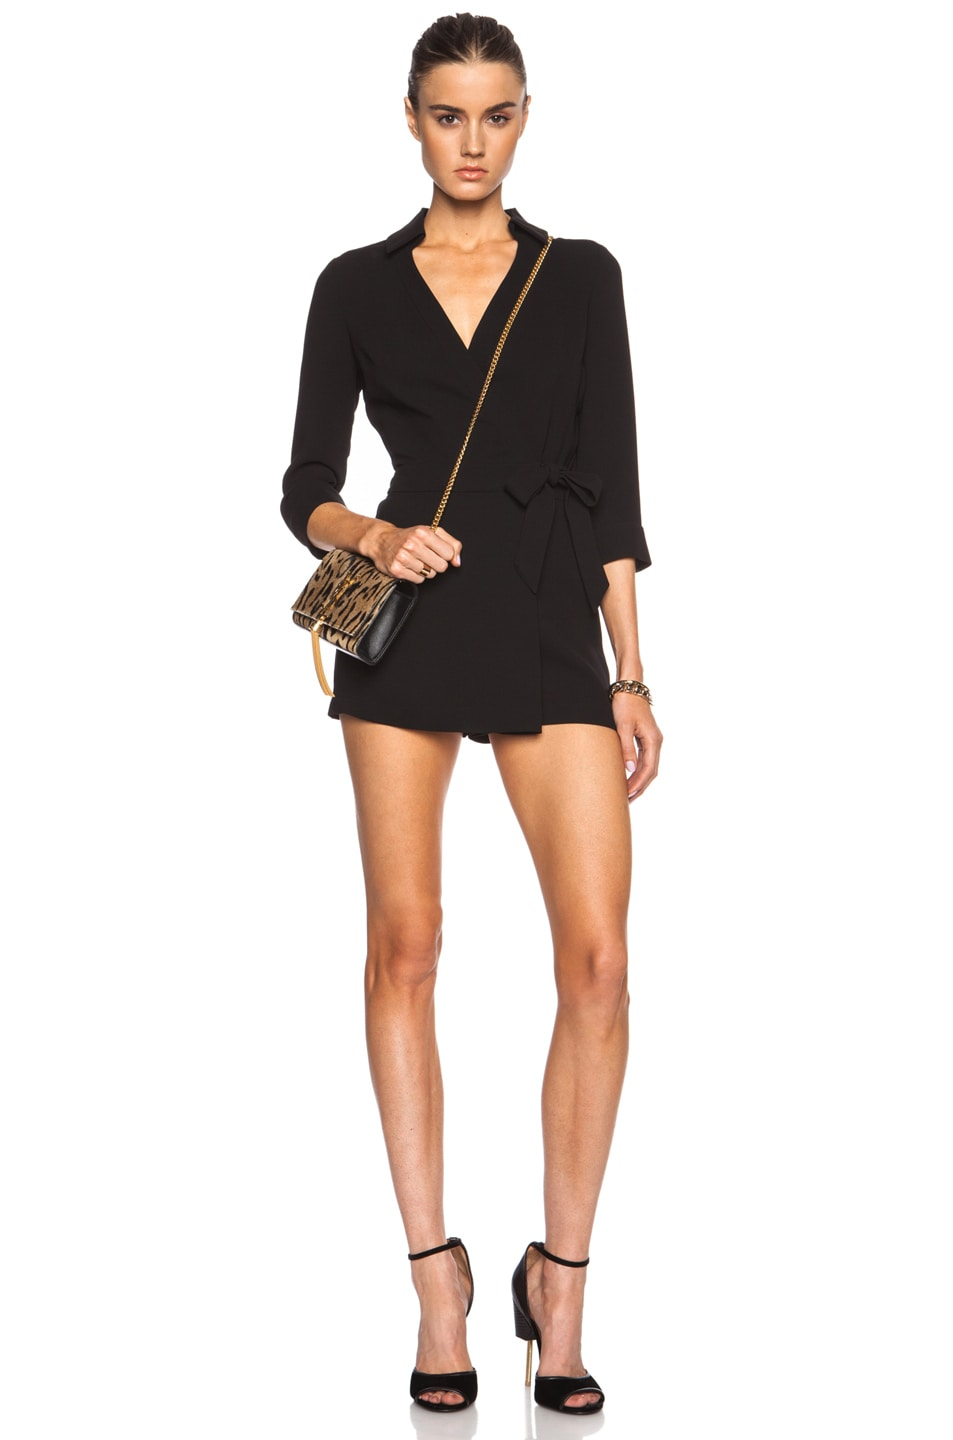 f9536ead05b3 Image 1 of Diane von Furstenberg Celeste Triacetate-Blend Romper in Black